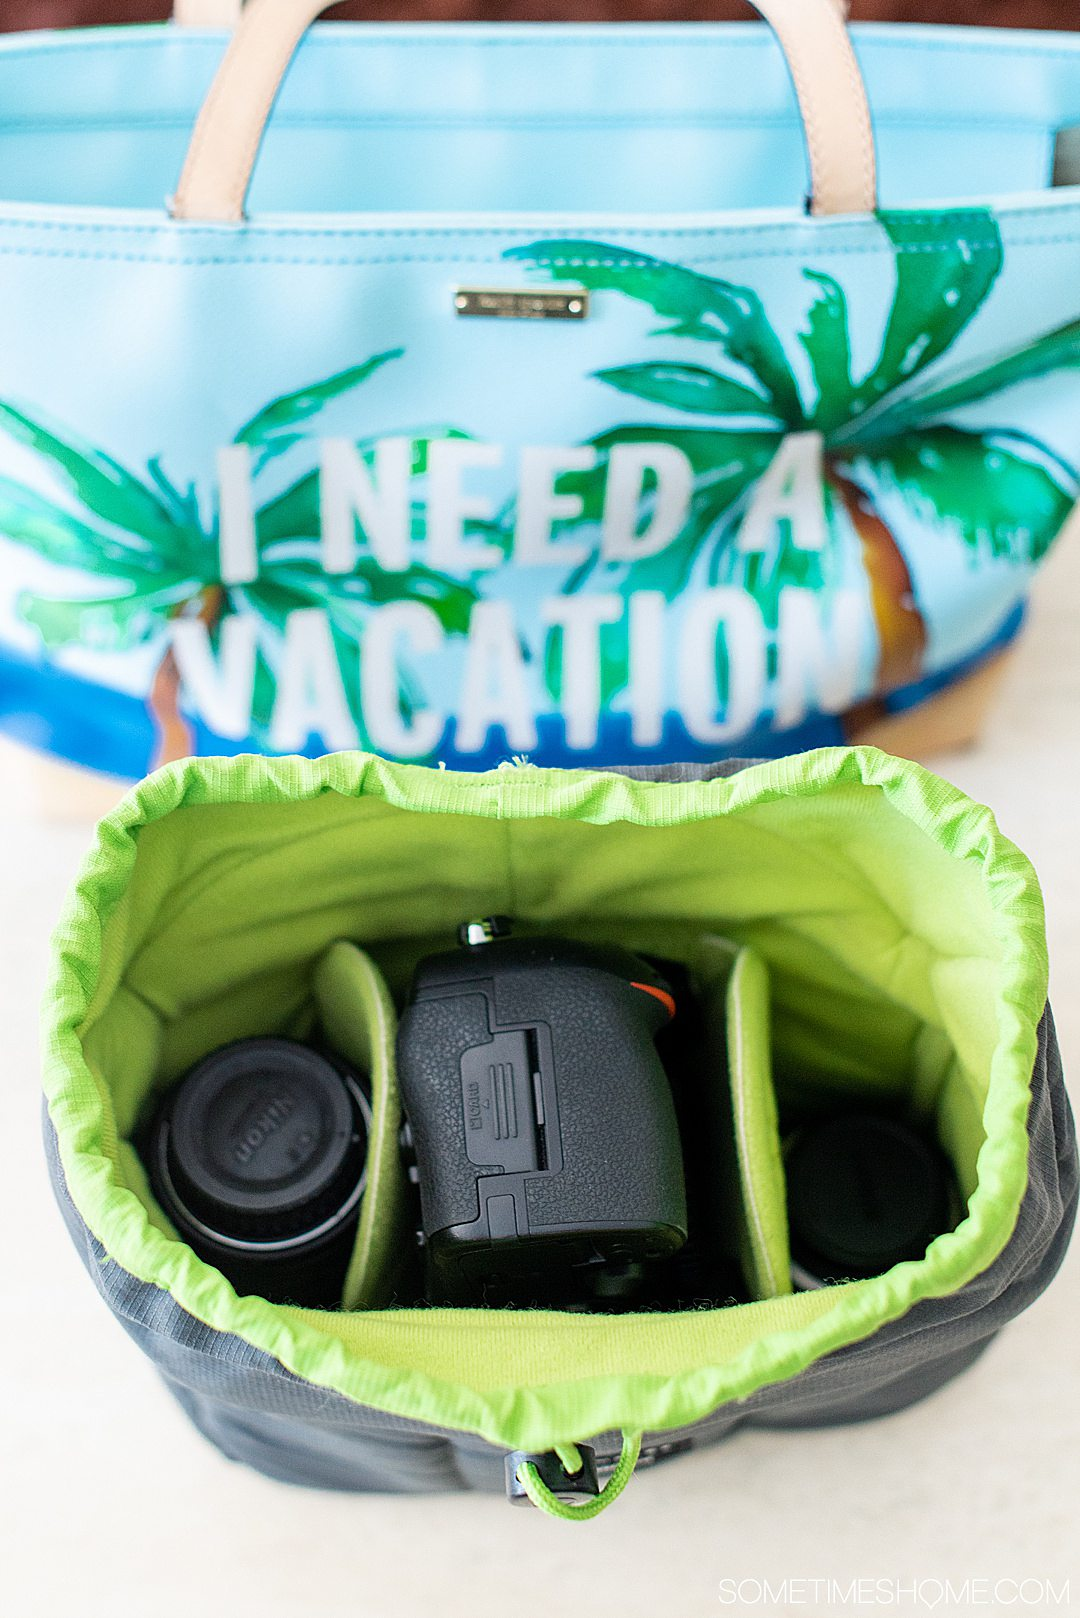 Unique travel gift ideas for men and women, him and her, if you want to gift a friend or surprise a couple in your life for a just because gift or holiday present. International theme and domestic inspired things too! This camera bag insert will be a lifesaver! #sometimeshome #uniquetravelgifts #travelgifts #travelpresents